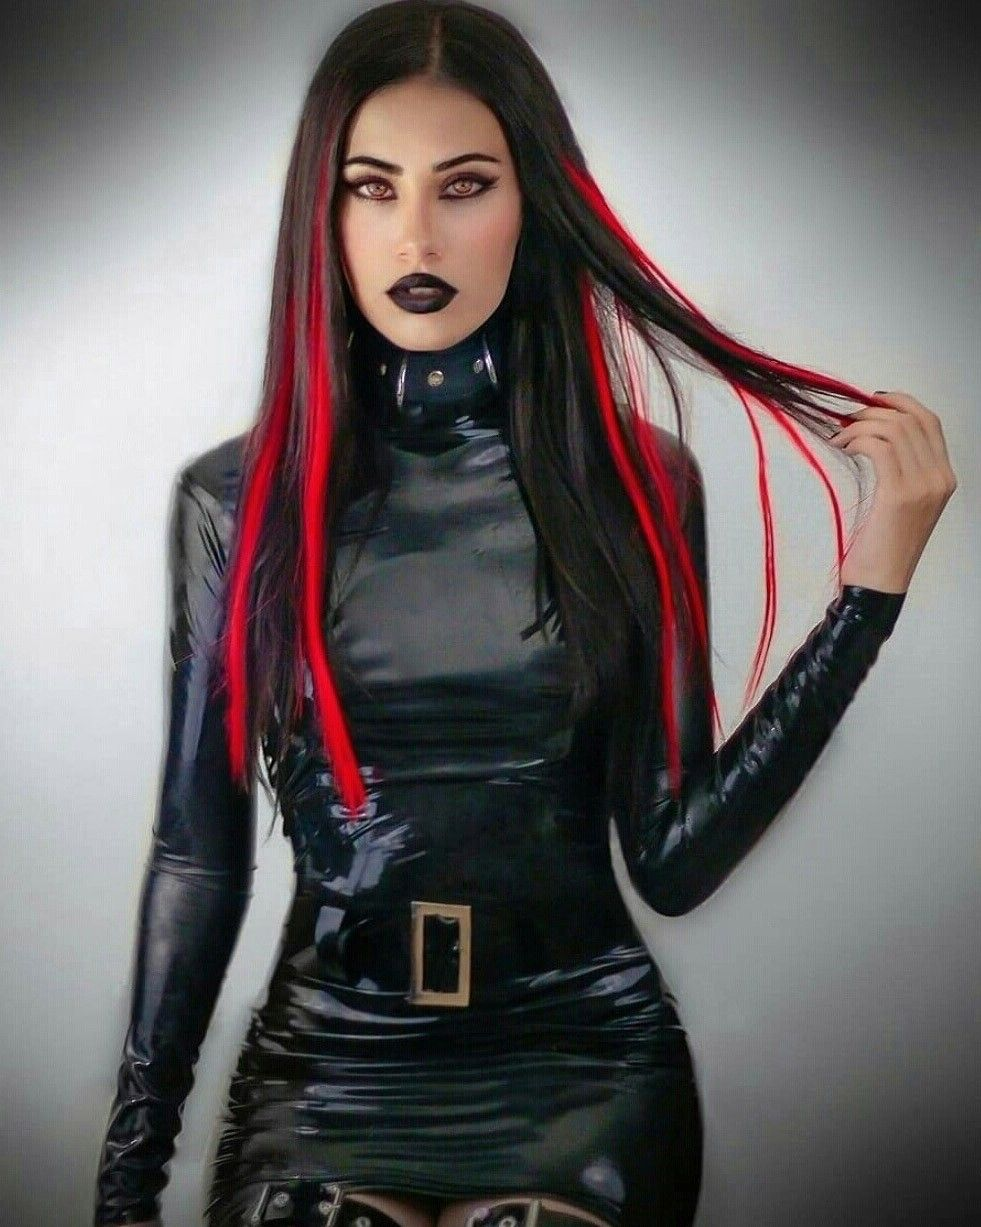 Pin on Latex, Leather, PVC and more